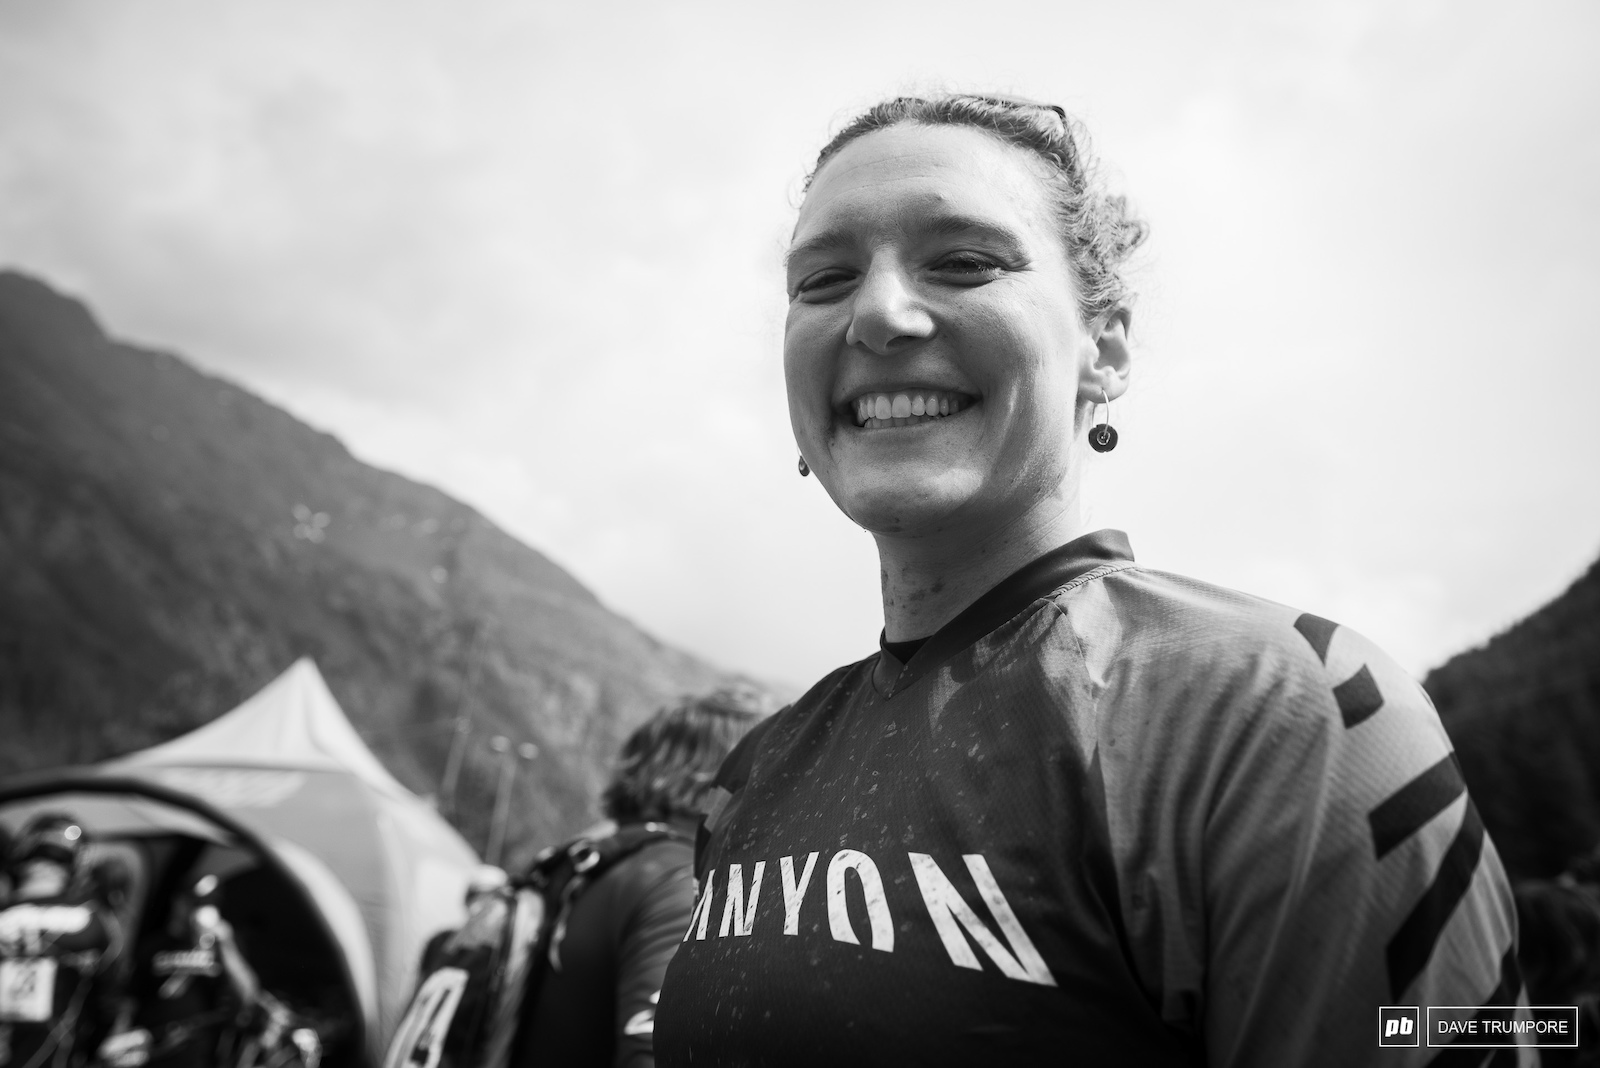 Hard work and determination landed Ines Thoma on the podium this weekend.